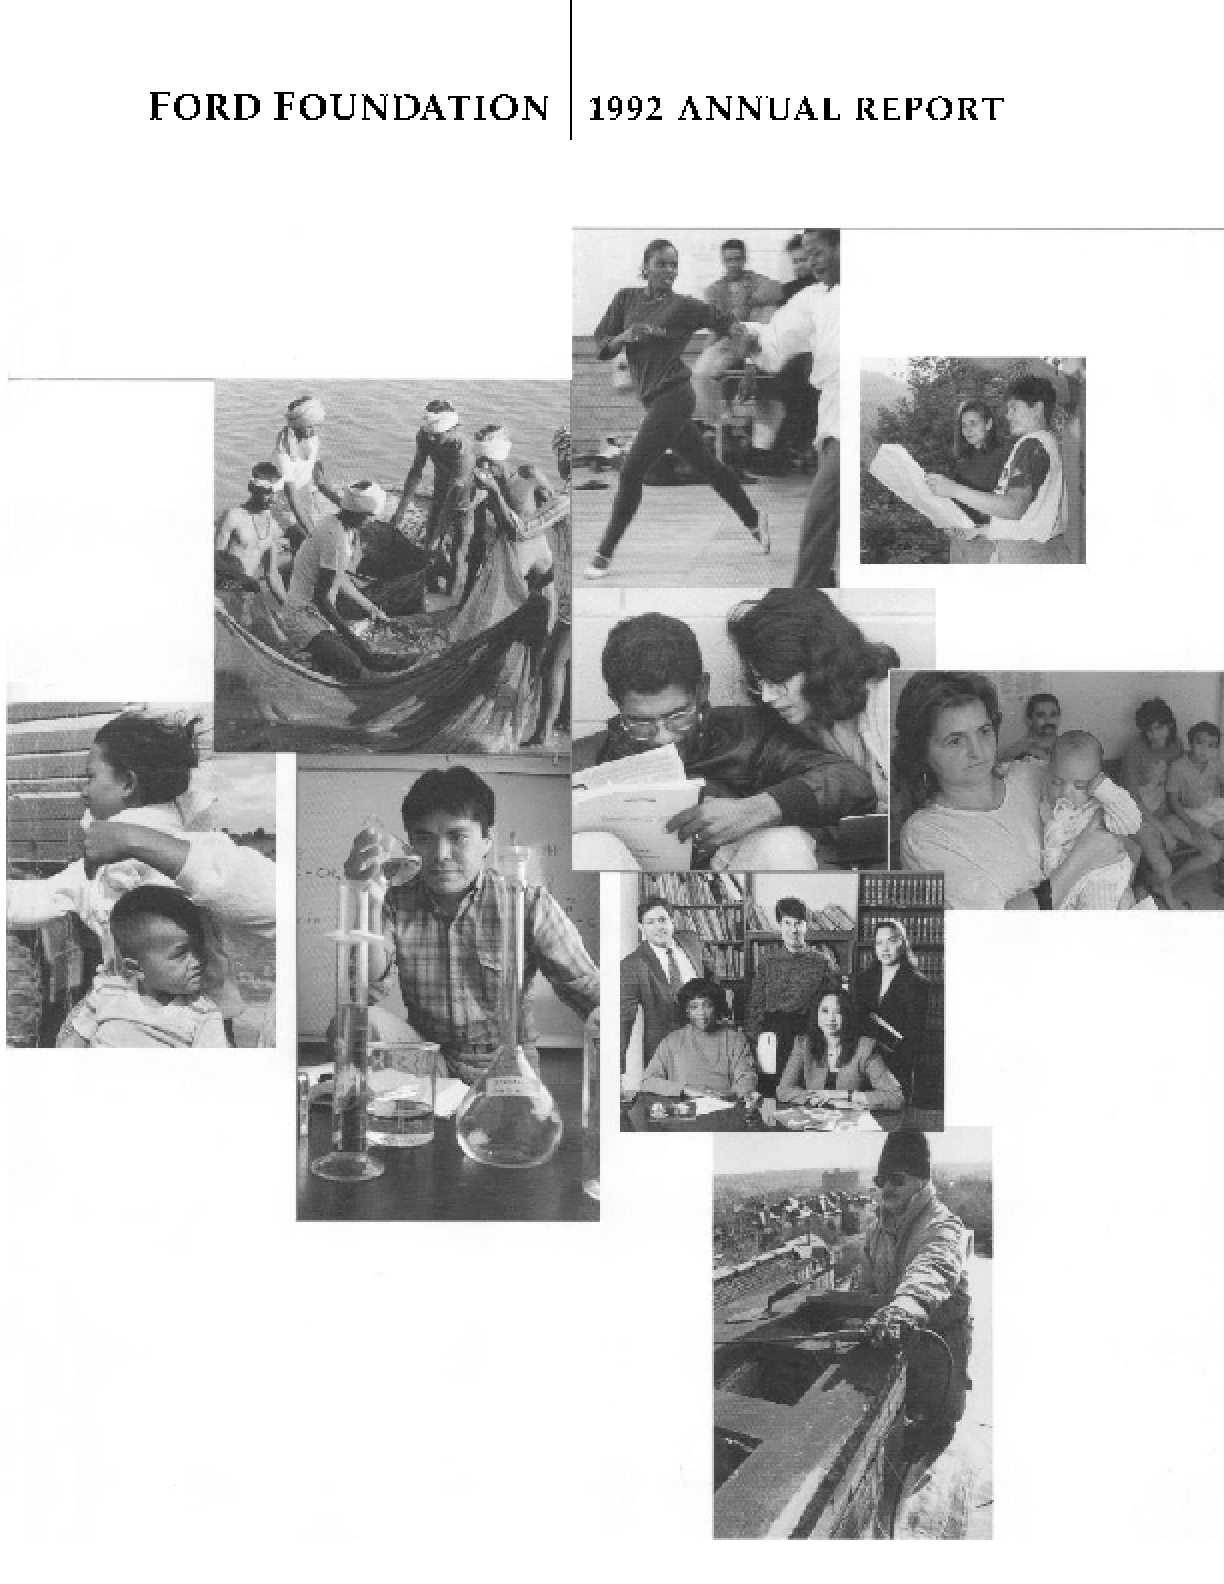 Ford Foundation - 1992 Annual Report